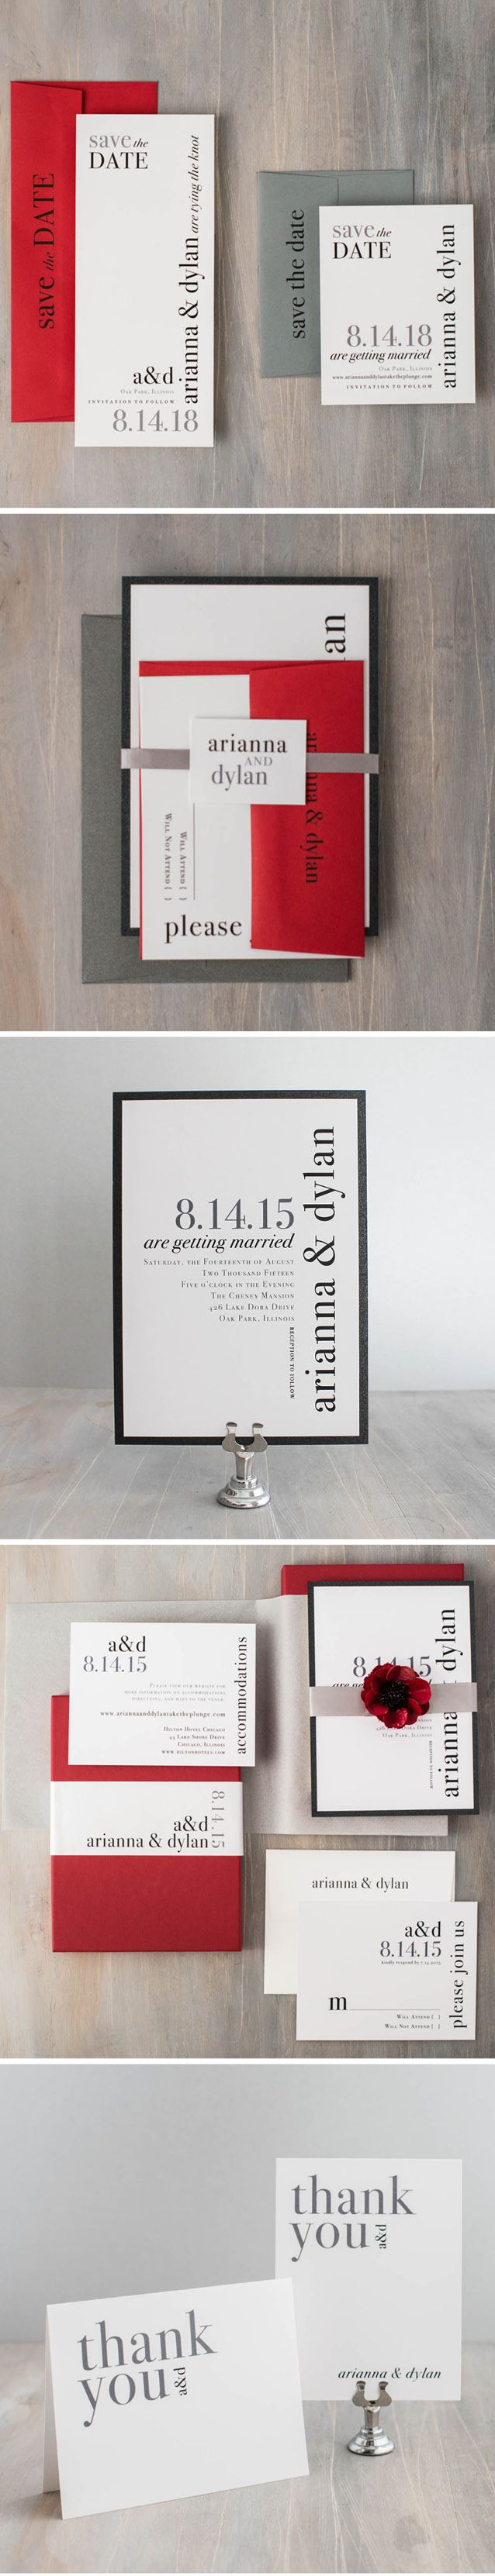 Keep it simple with these typographic inspired modern wedding invitations with black, white & red by Beacon Lane